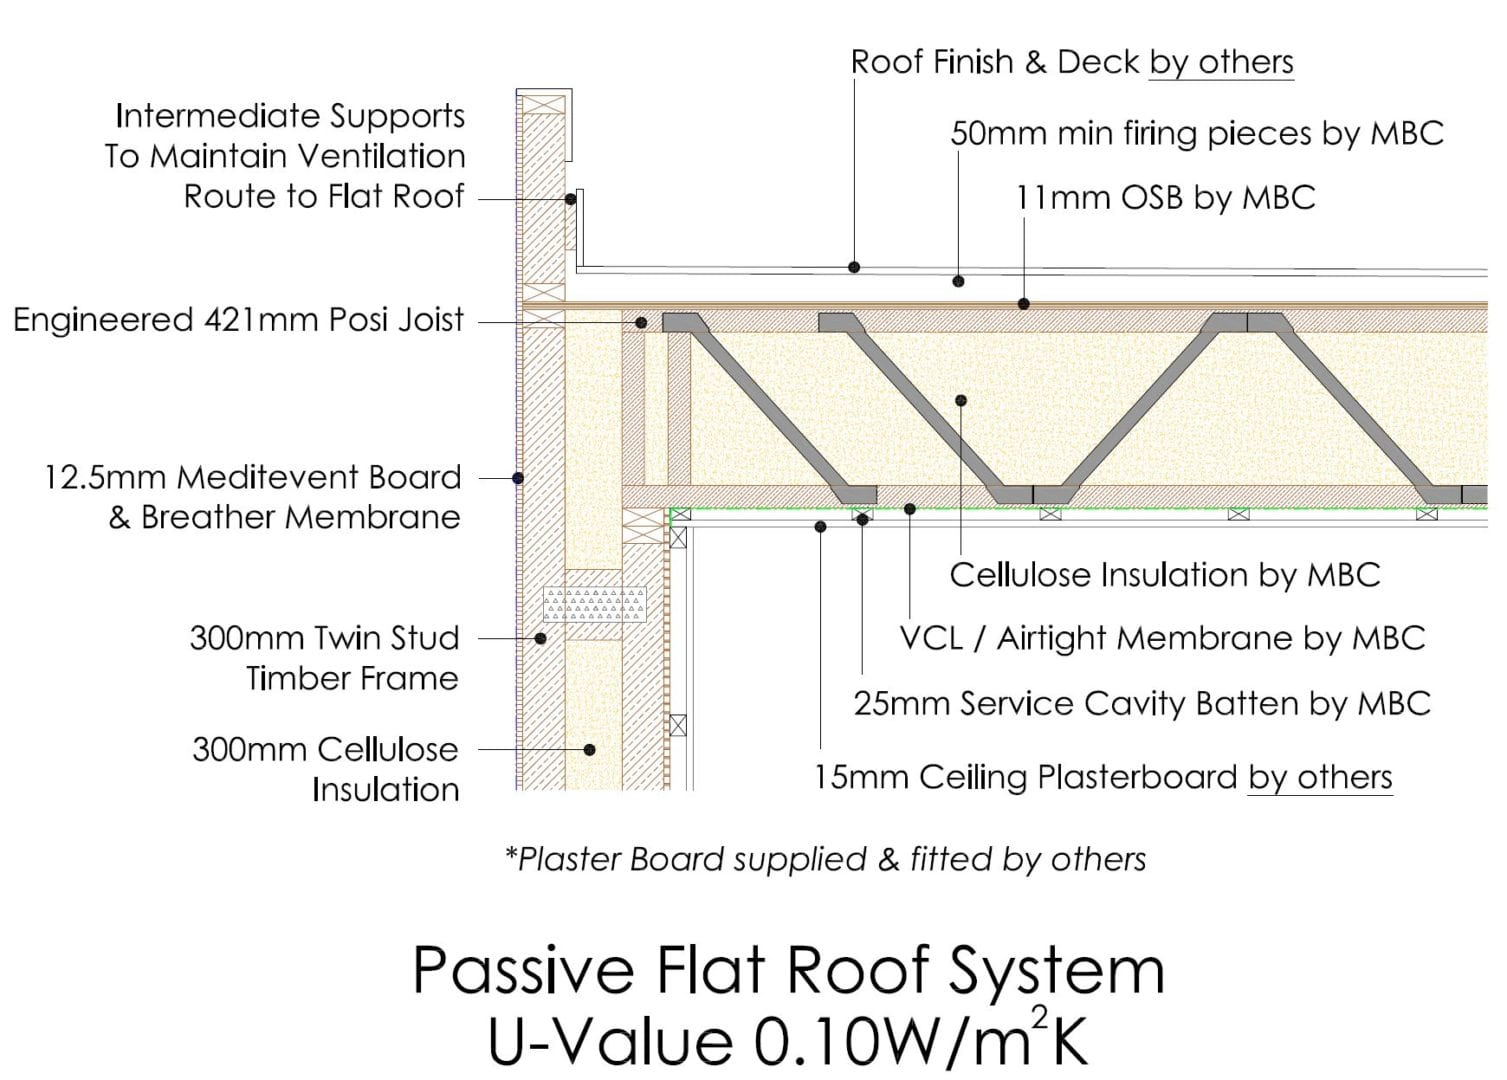 Passive Flat Roof Section